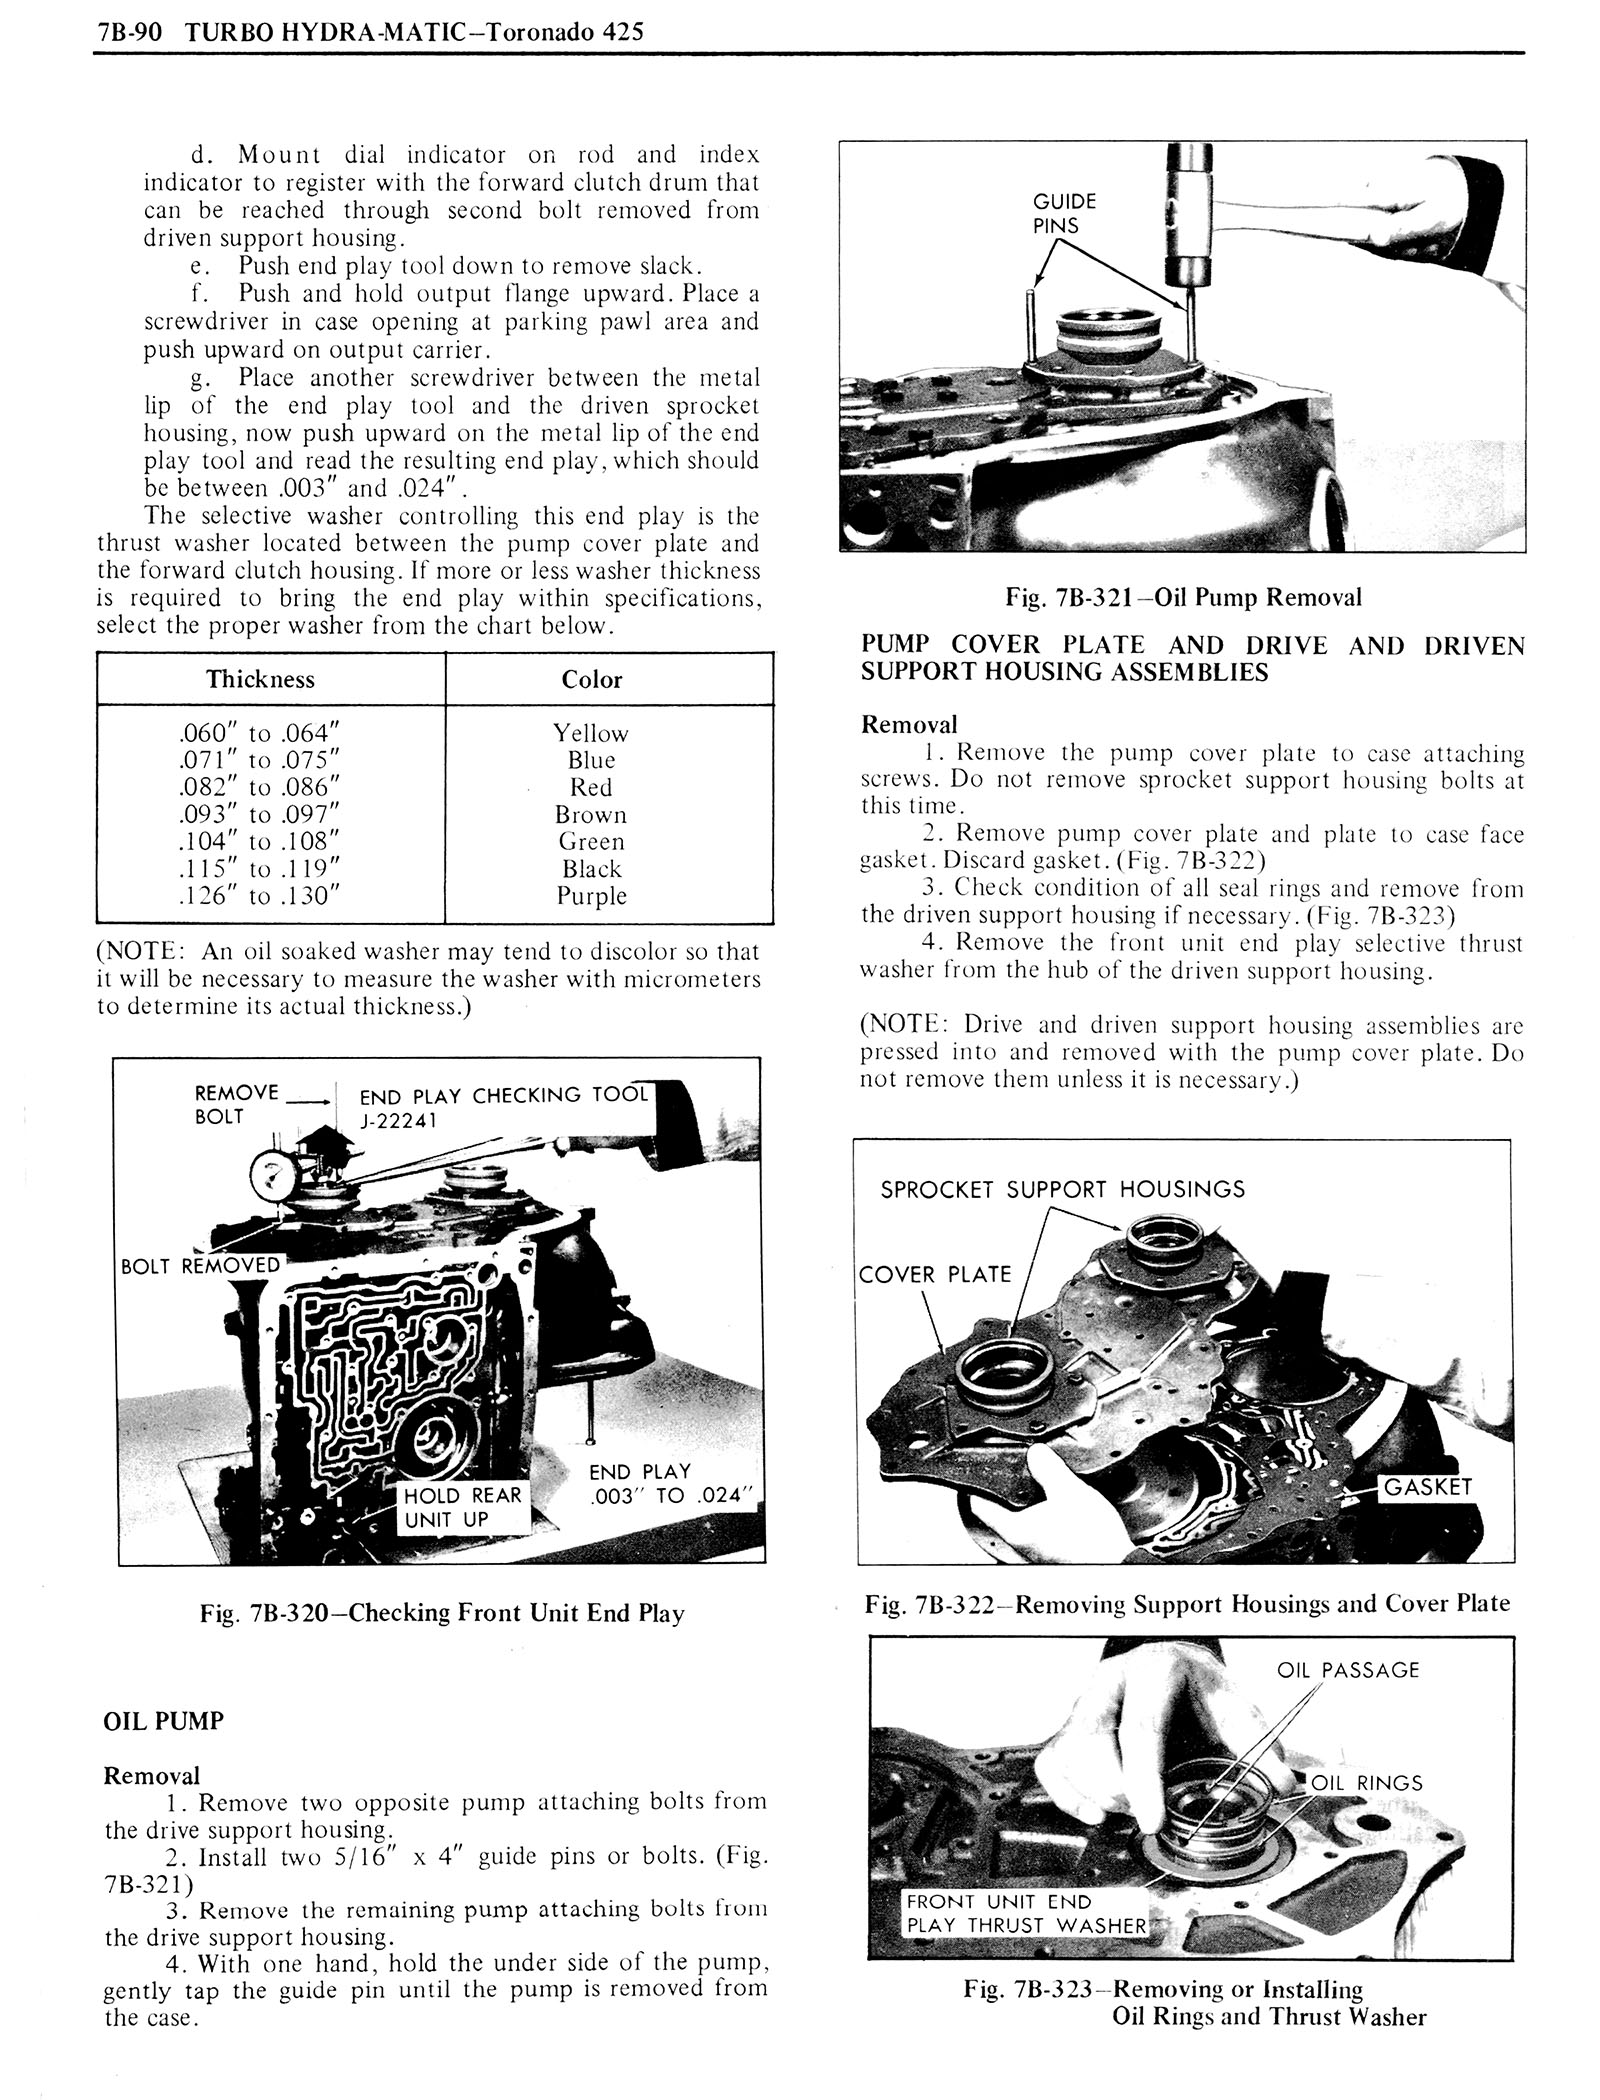 1976 Oldsmobile Service Manual page 822 of 1390